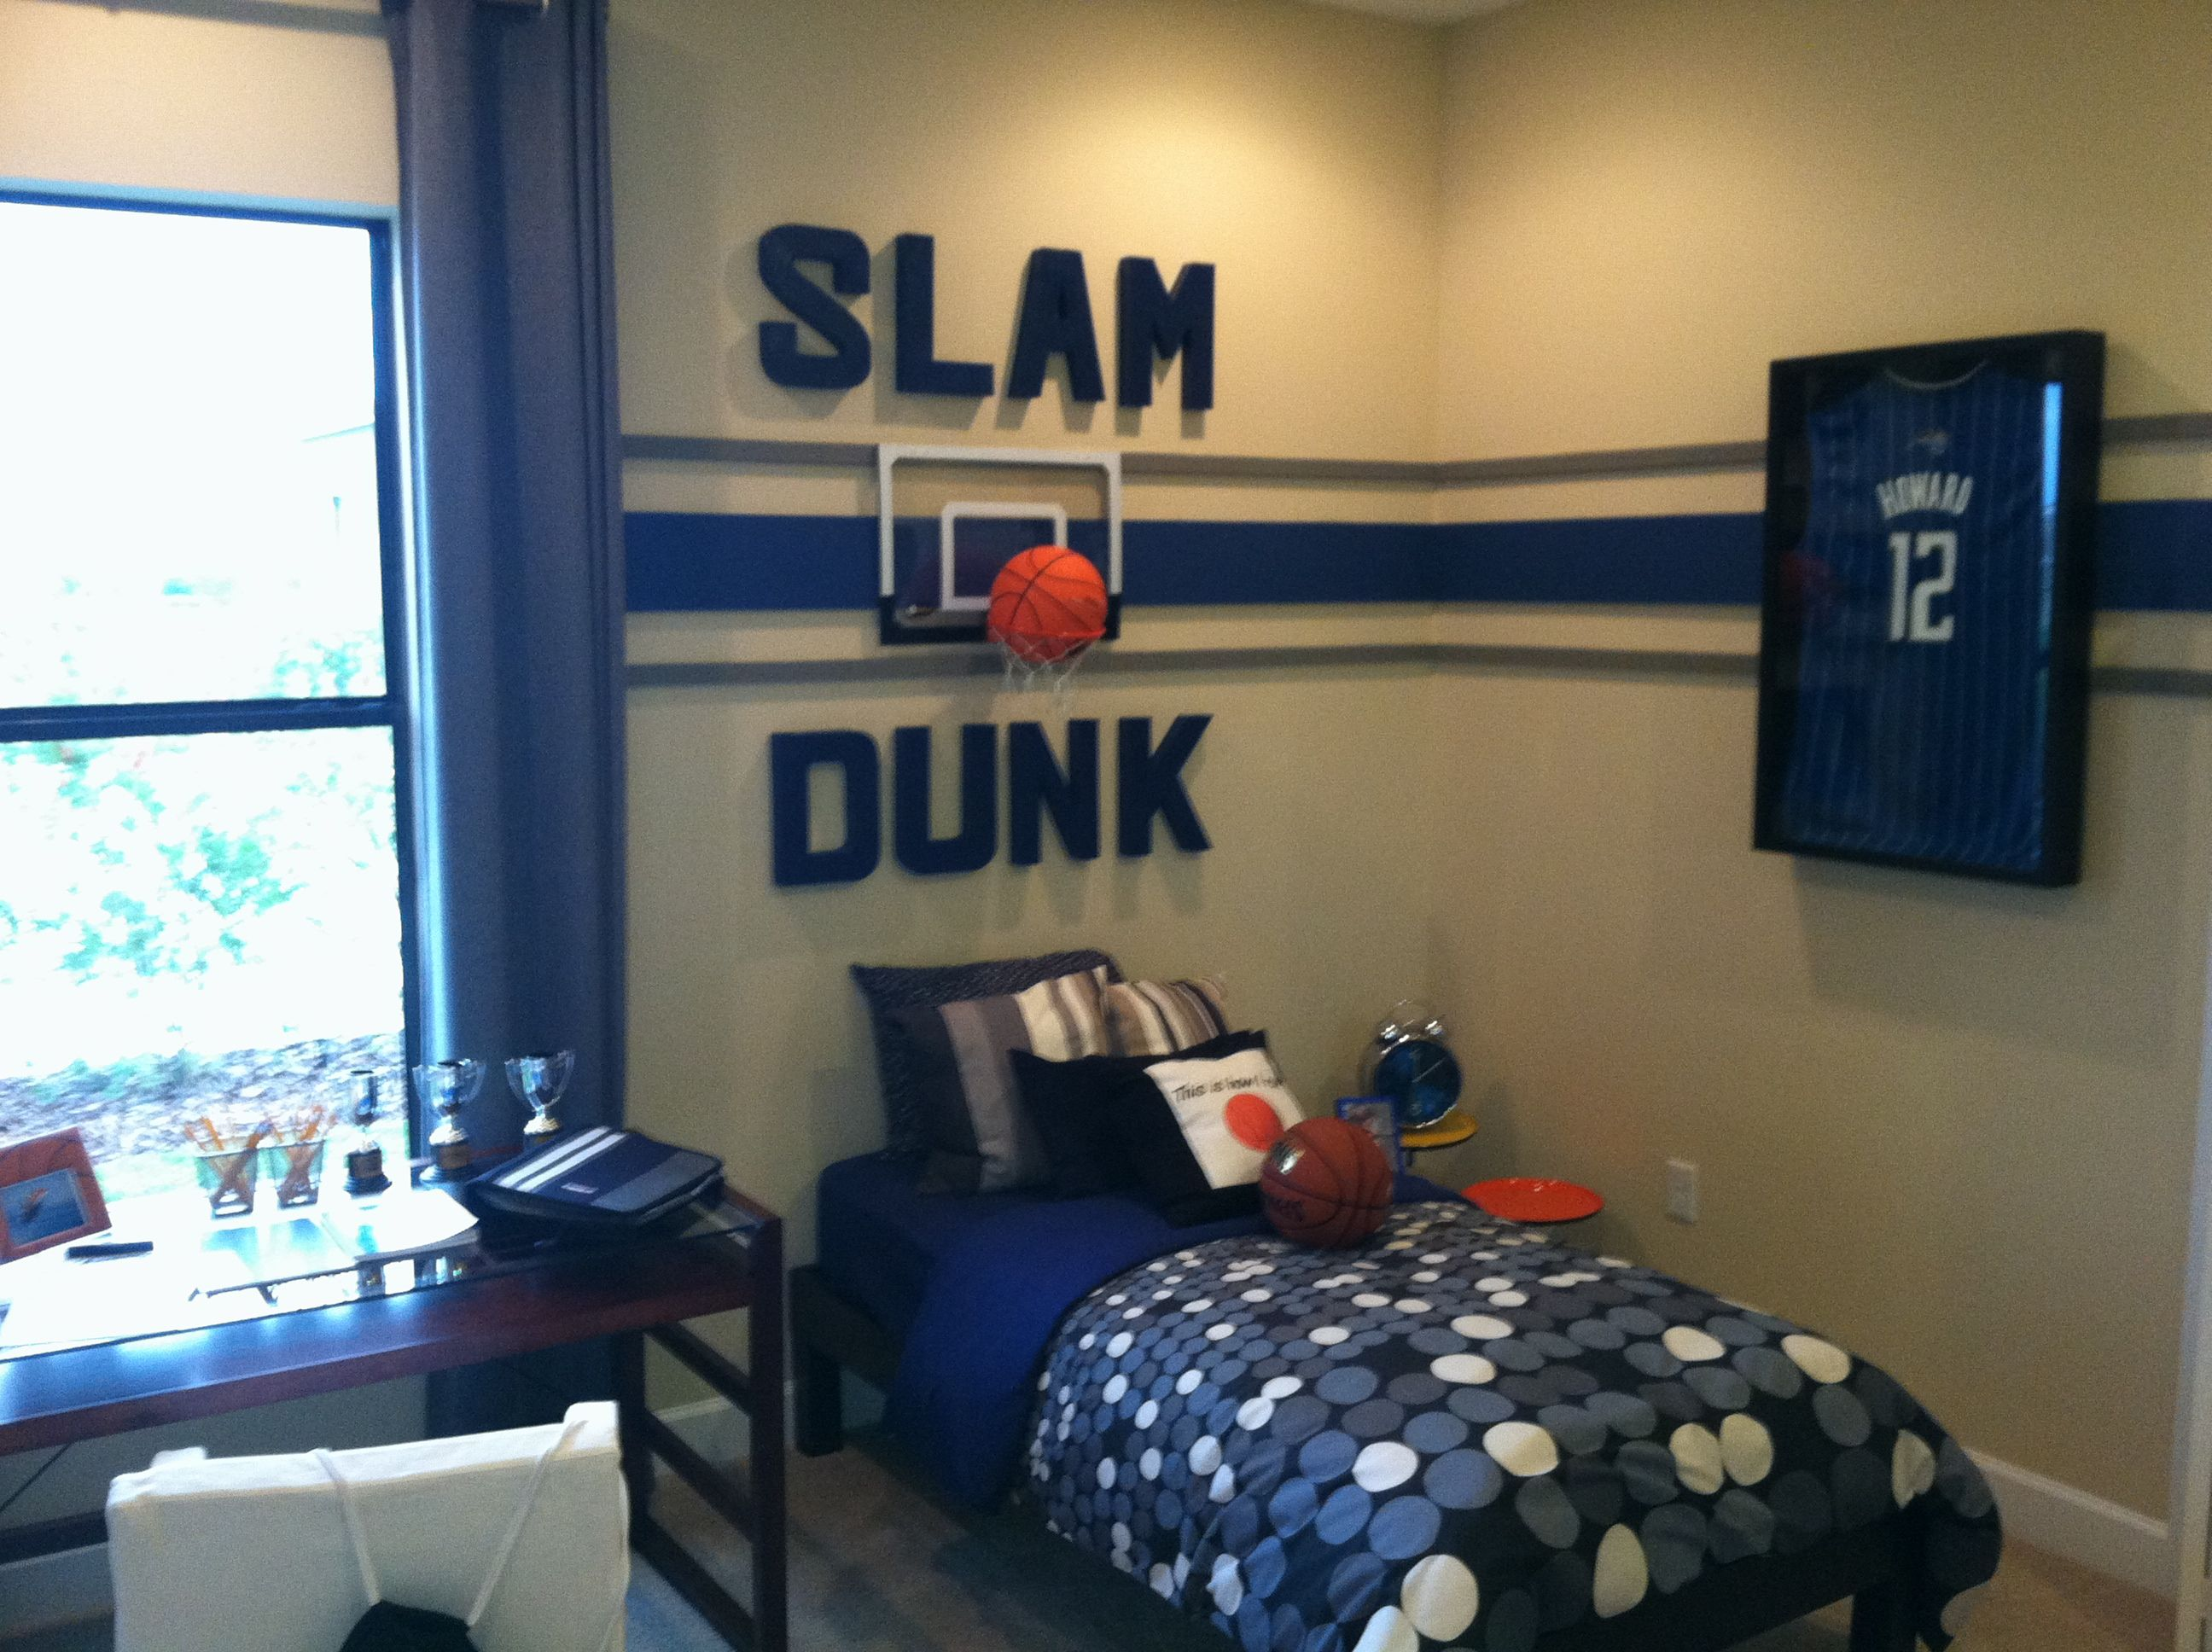 Boys basketball bedroom ideas - Fun Sports Themed Bedroom Designs For Kids